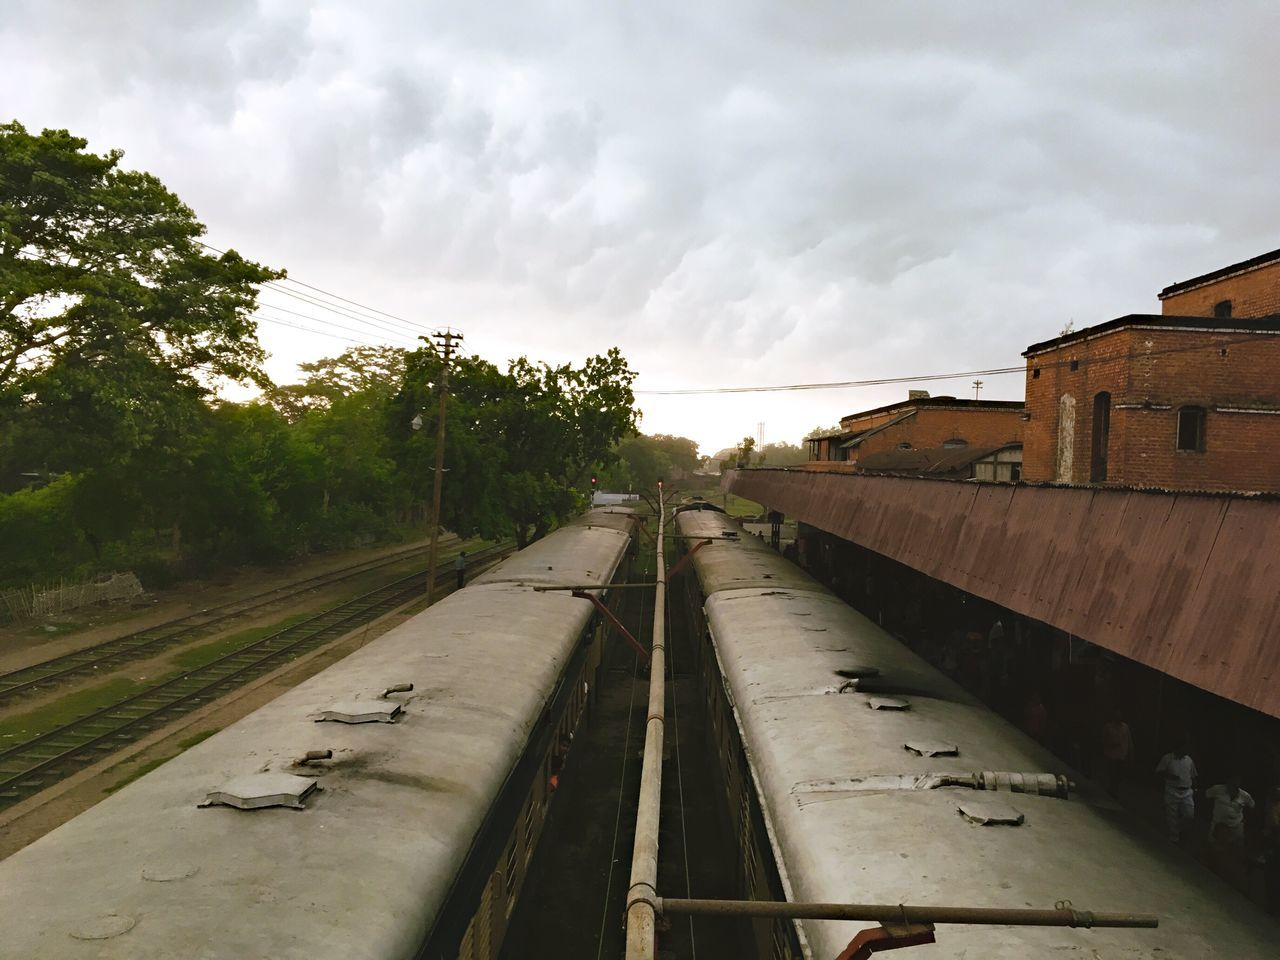 Trains Sky Cloud - Sky Outdoors No People Tree Built Structure Architecture Building Exterior Day Nature EyeEm Traveling EyeEm Travel Photography Bangladesh Travel Photography Traveling The World Travel Nature Cloud Clouds And Sky Cloudy Cloudscape Train Station Train Station Clouds